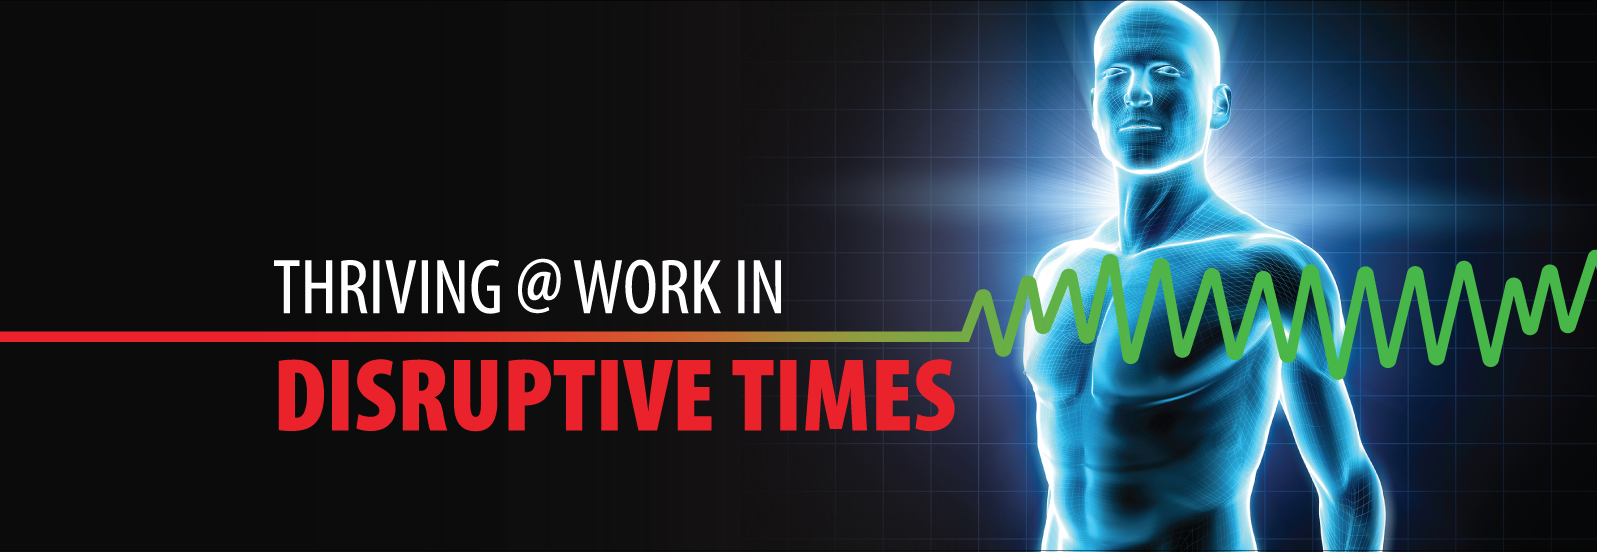 Thriving at work in disruptive times 2017